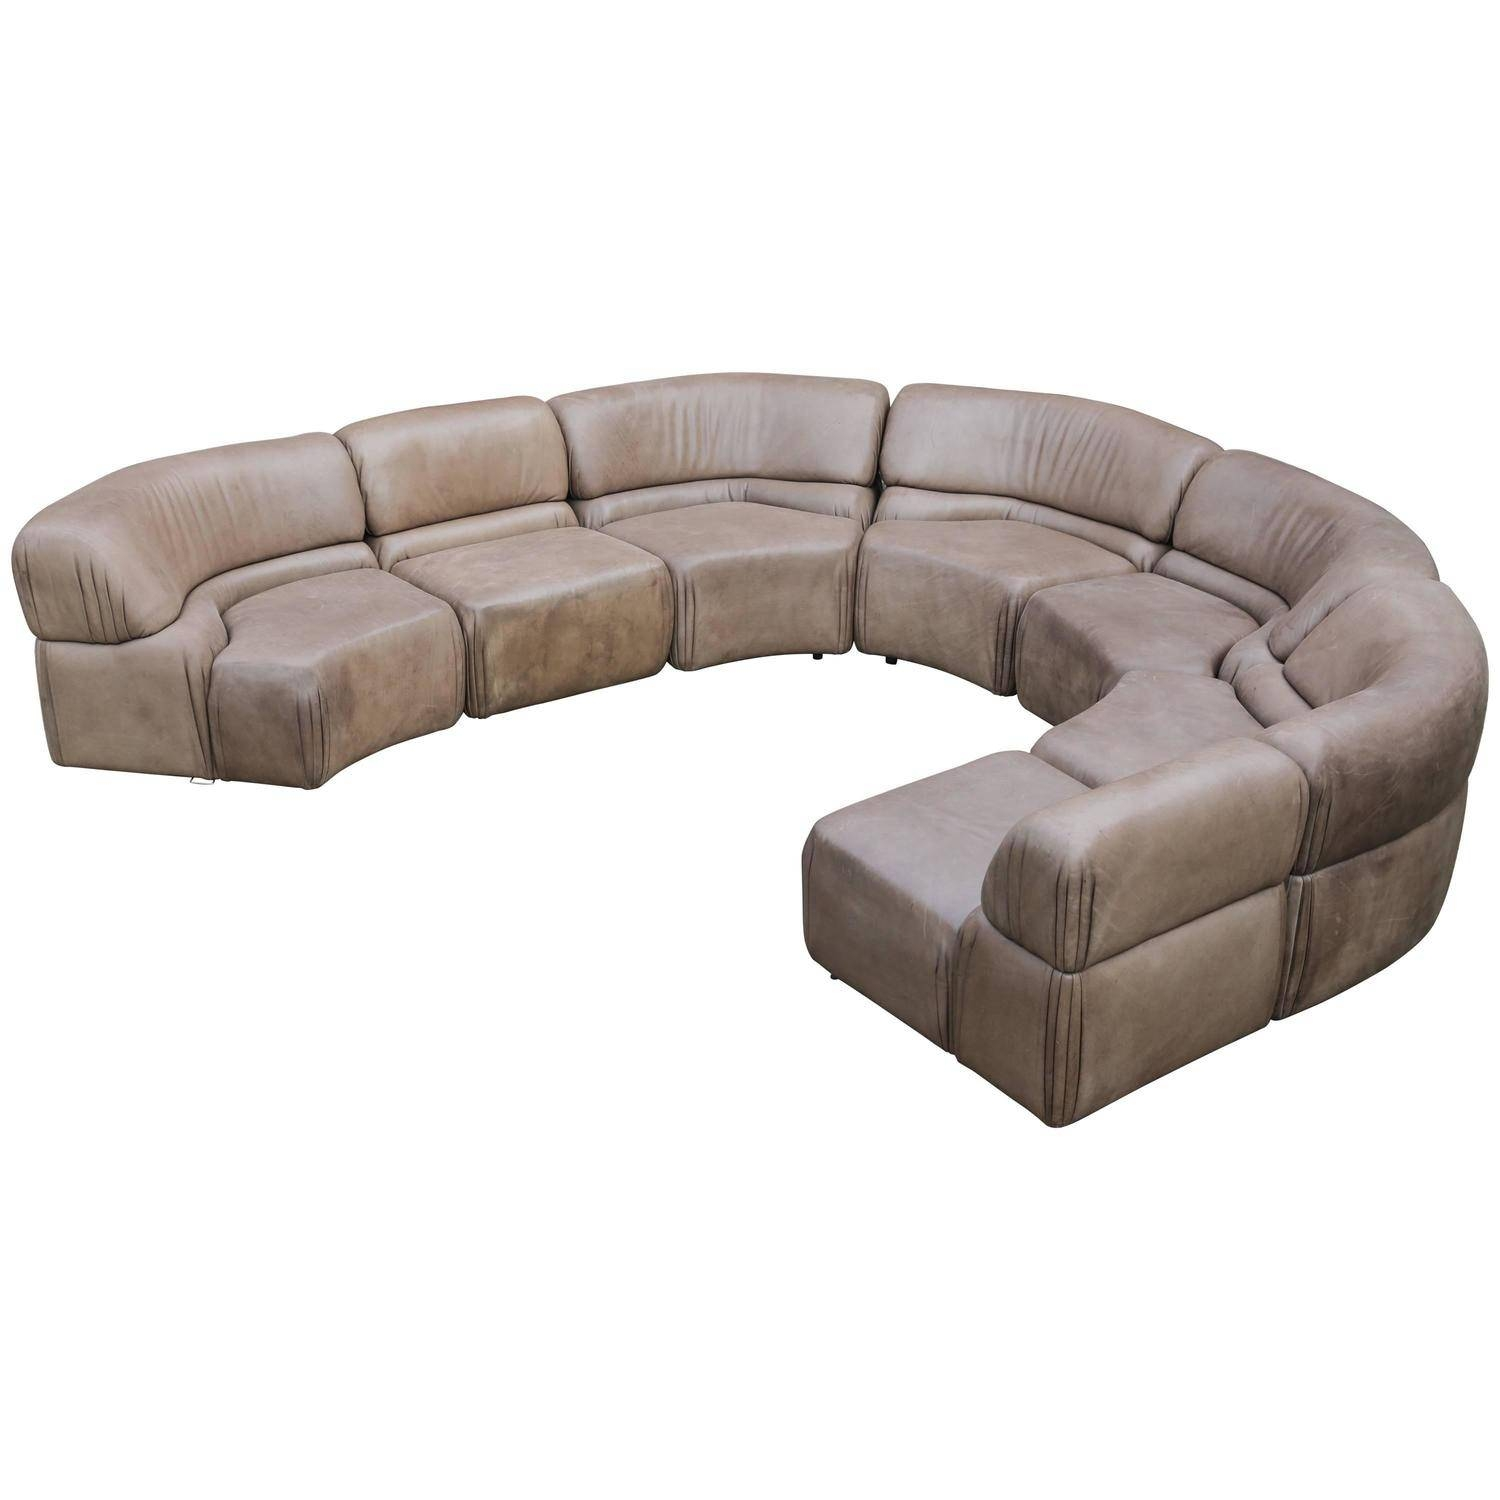 25 Best Ideas About U Shaped Sofa On Pinterest U Shaped Couch 10 pertaining to 10 Foot Sectional Sofa (Image 12 of 30)